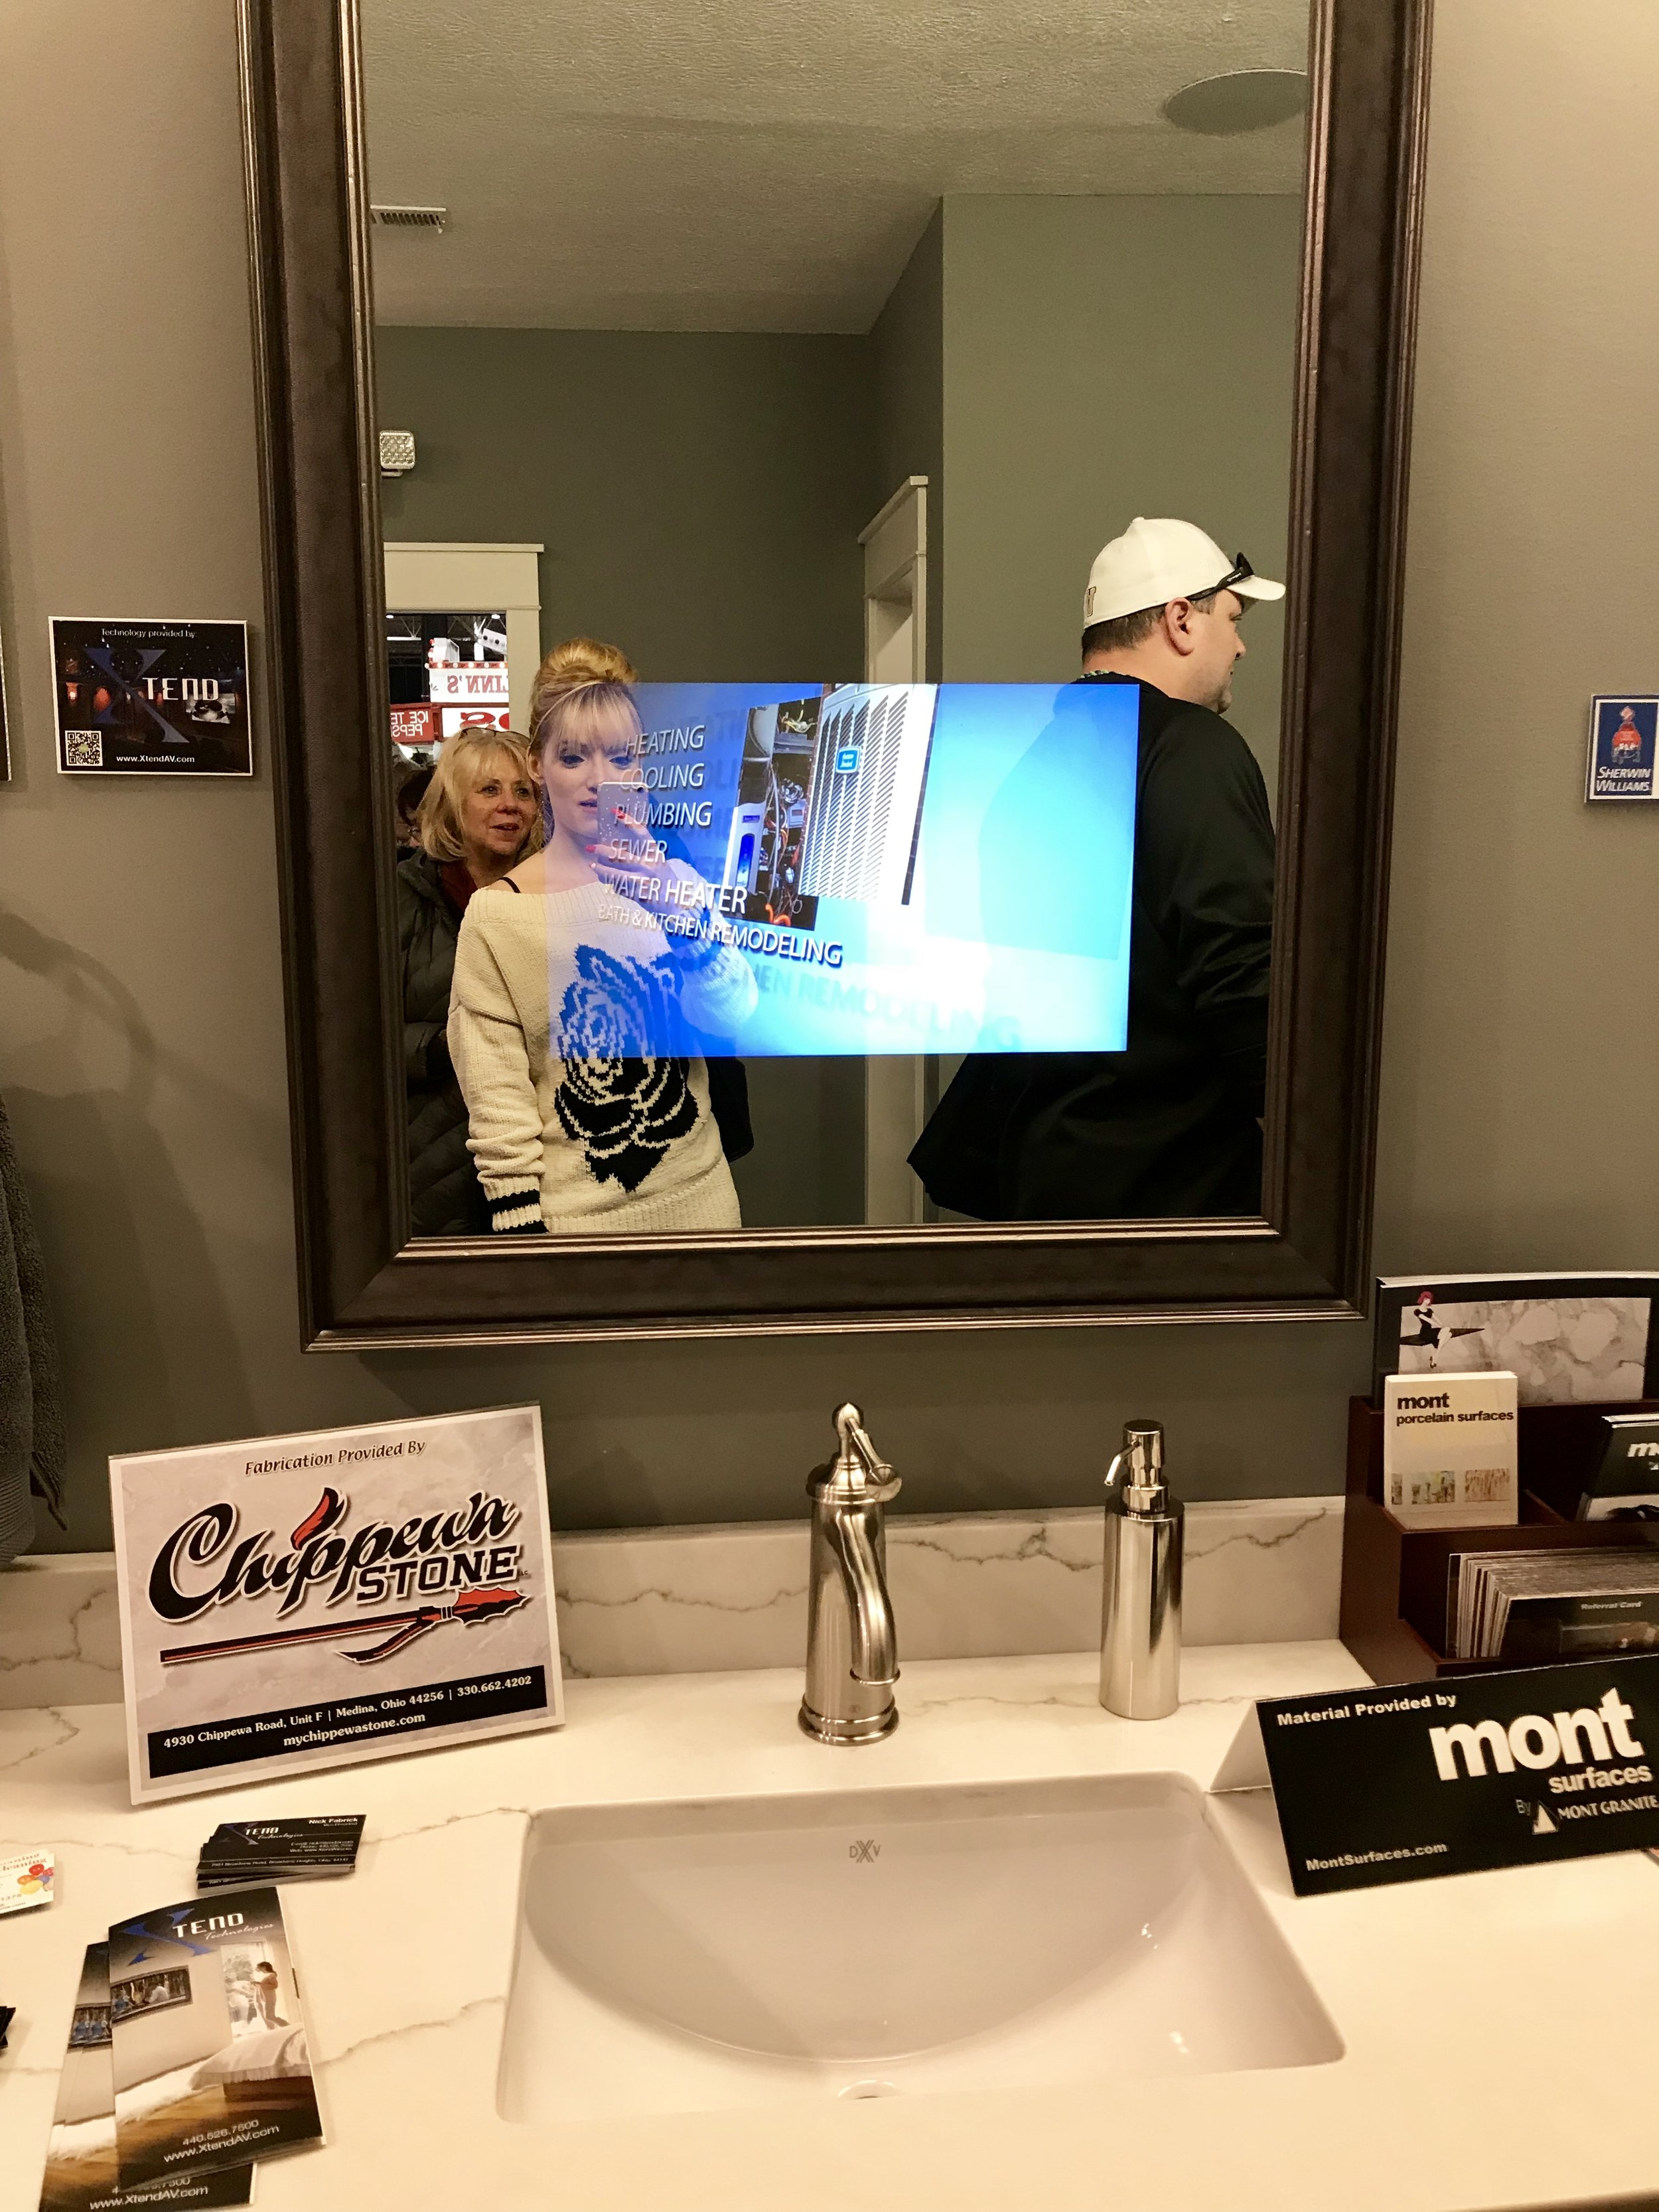 TV/Computer Screen in your Bathroom Mirror